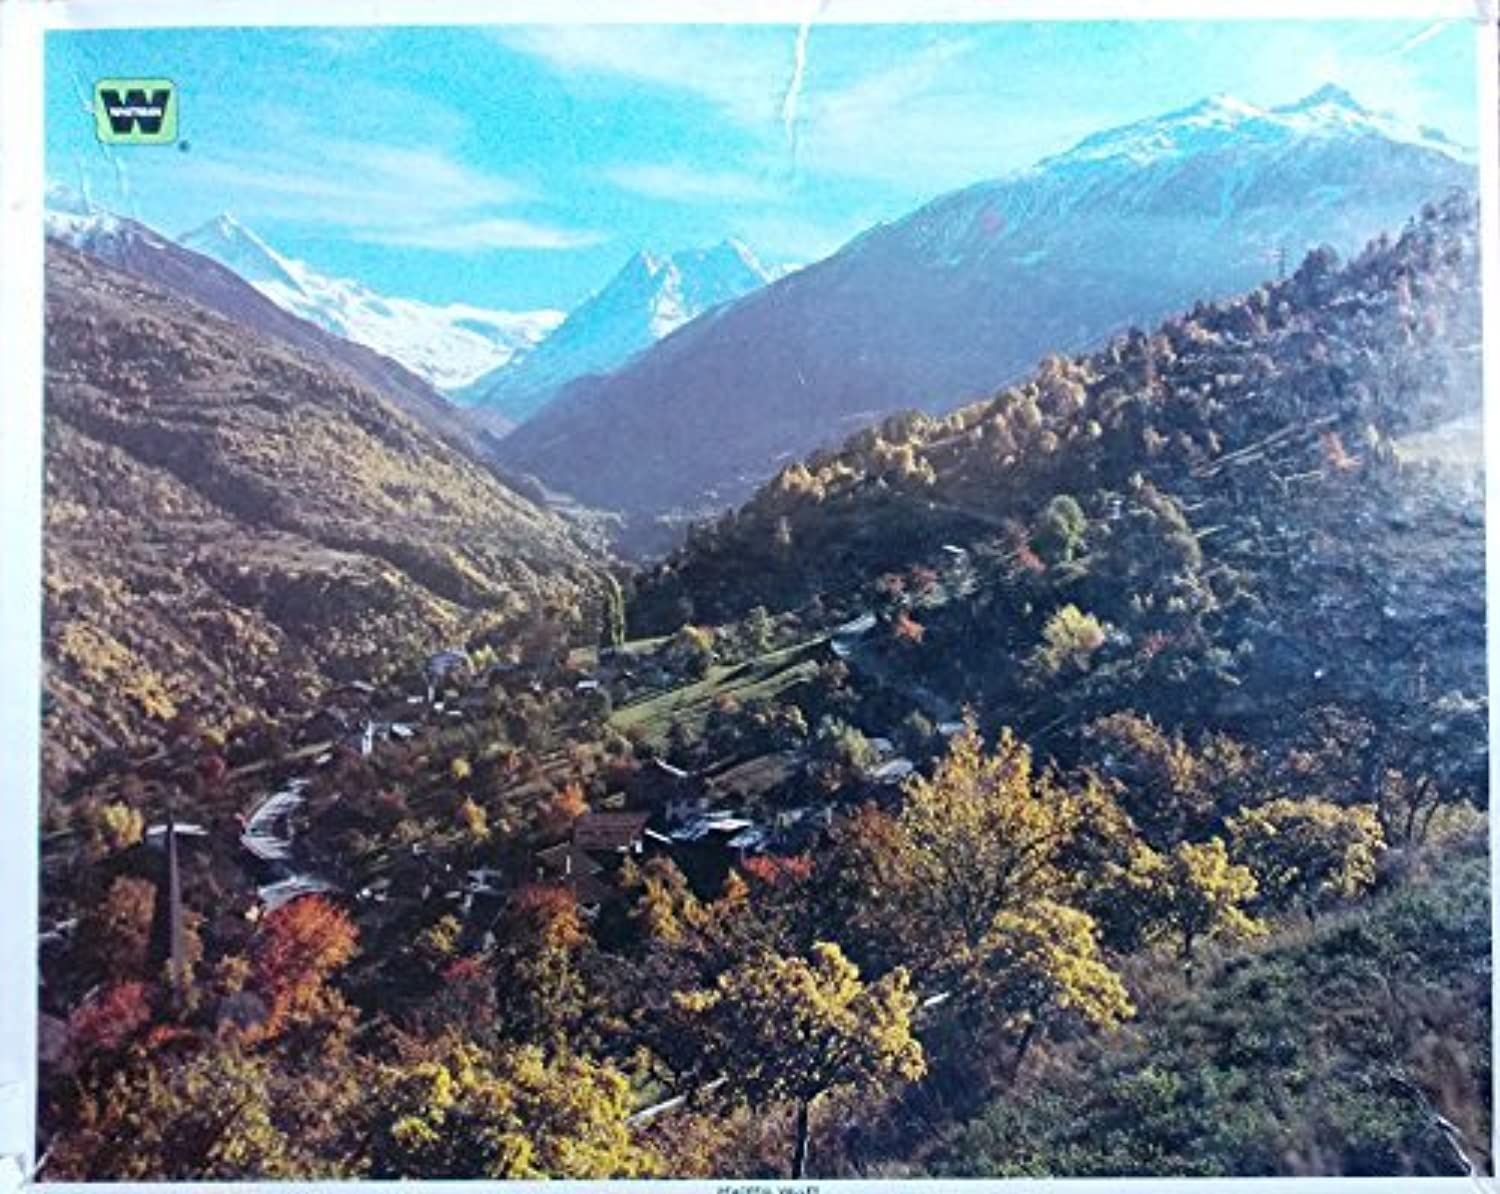 conveniente Whitman Peaceful Valley Valley Valley 1000 Jigsaw Puzzle Pieces by Whitman Coins  tienda de descuento